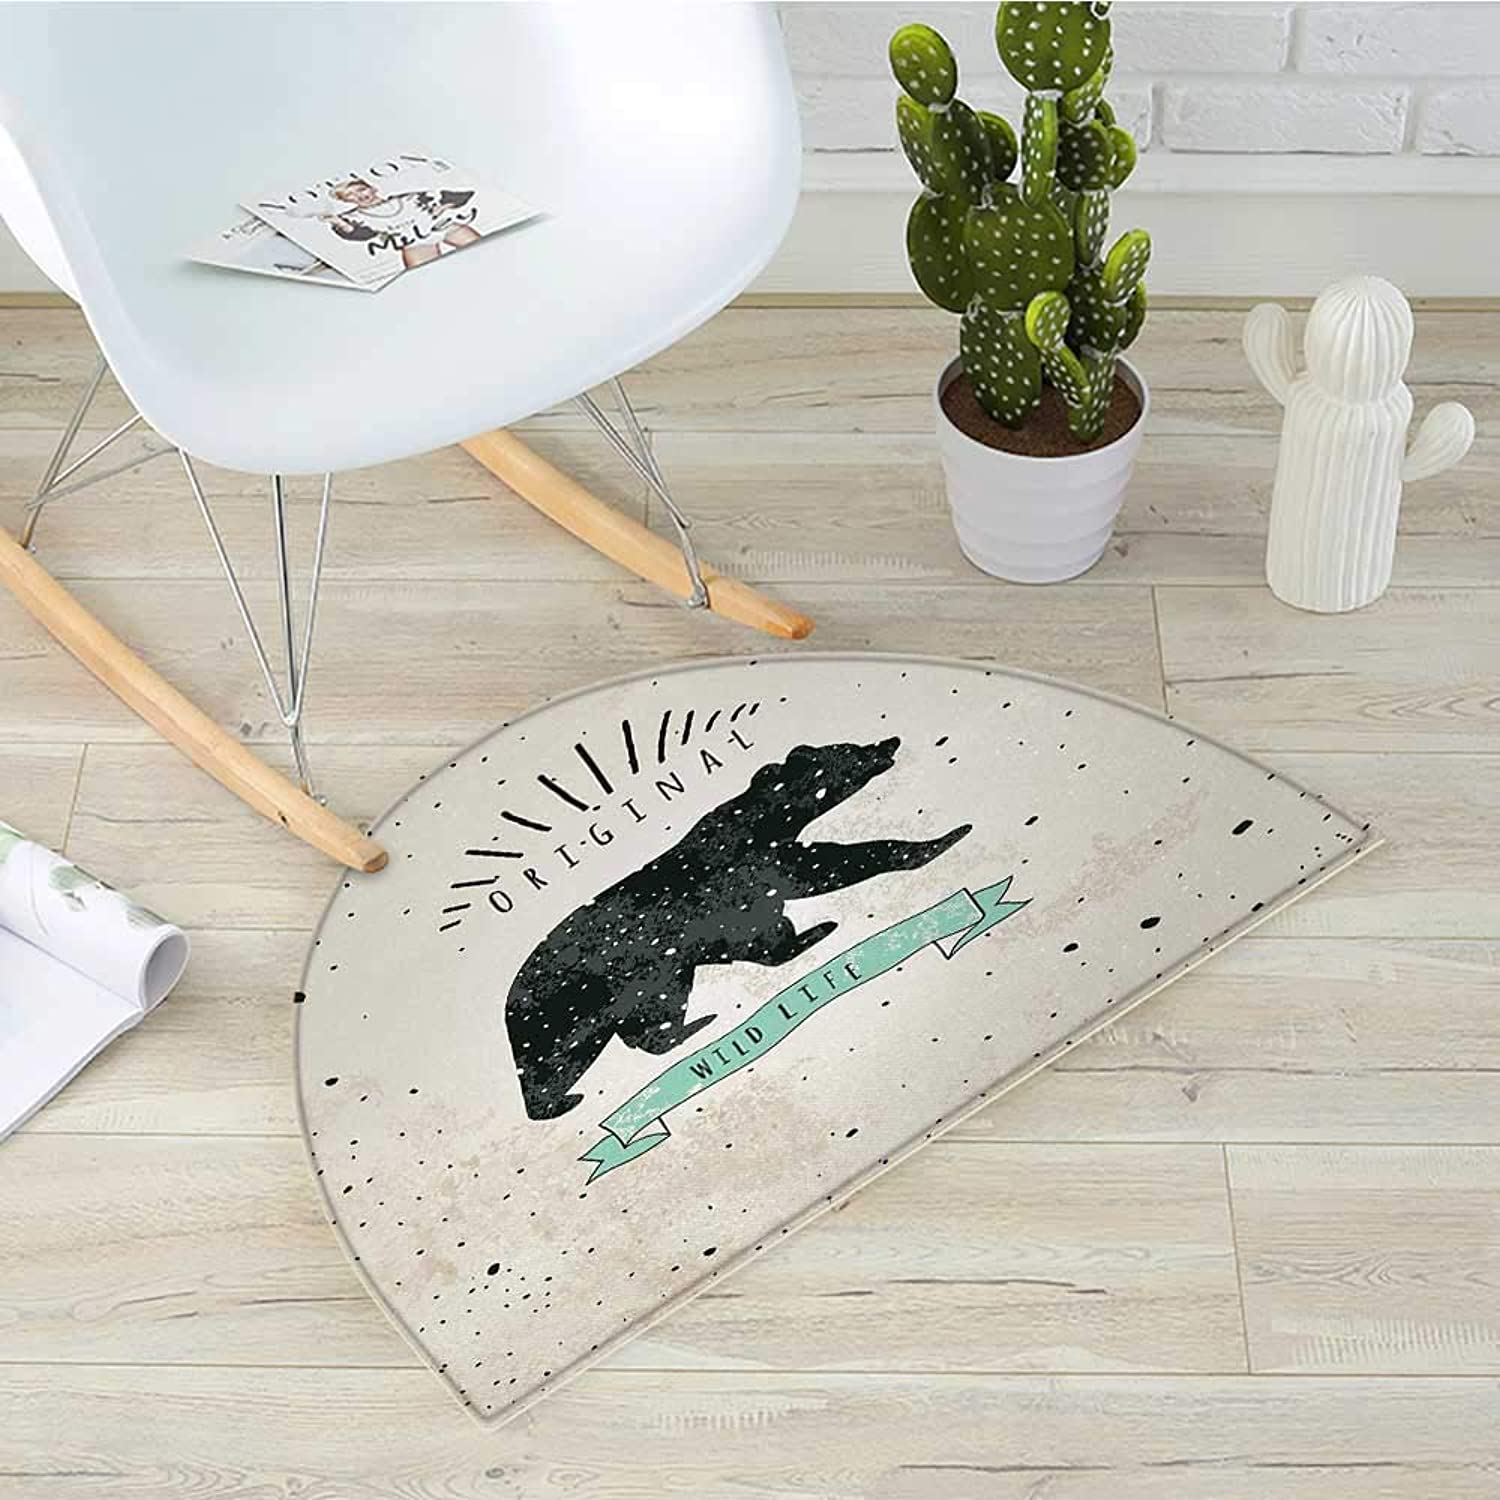 Bear Semicircle Doormat Vintage Wildlife Label Hunting Theme Icon with Random Dots Predator Paws Halfmoon doormats H 35.4  xD 53.1  Tan Black Mint Green